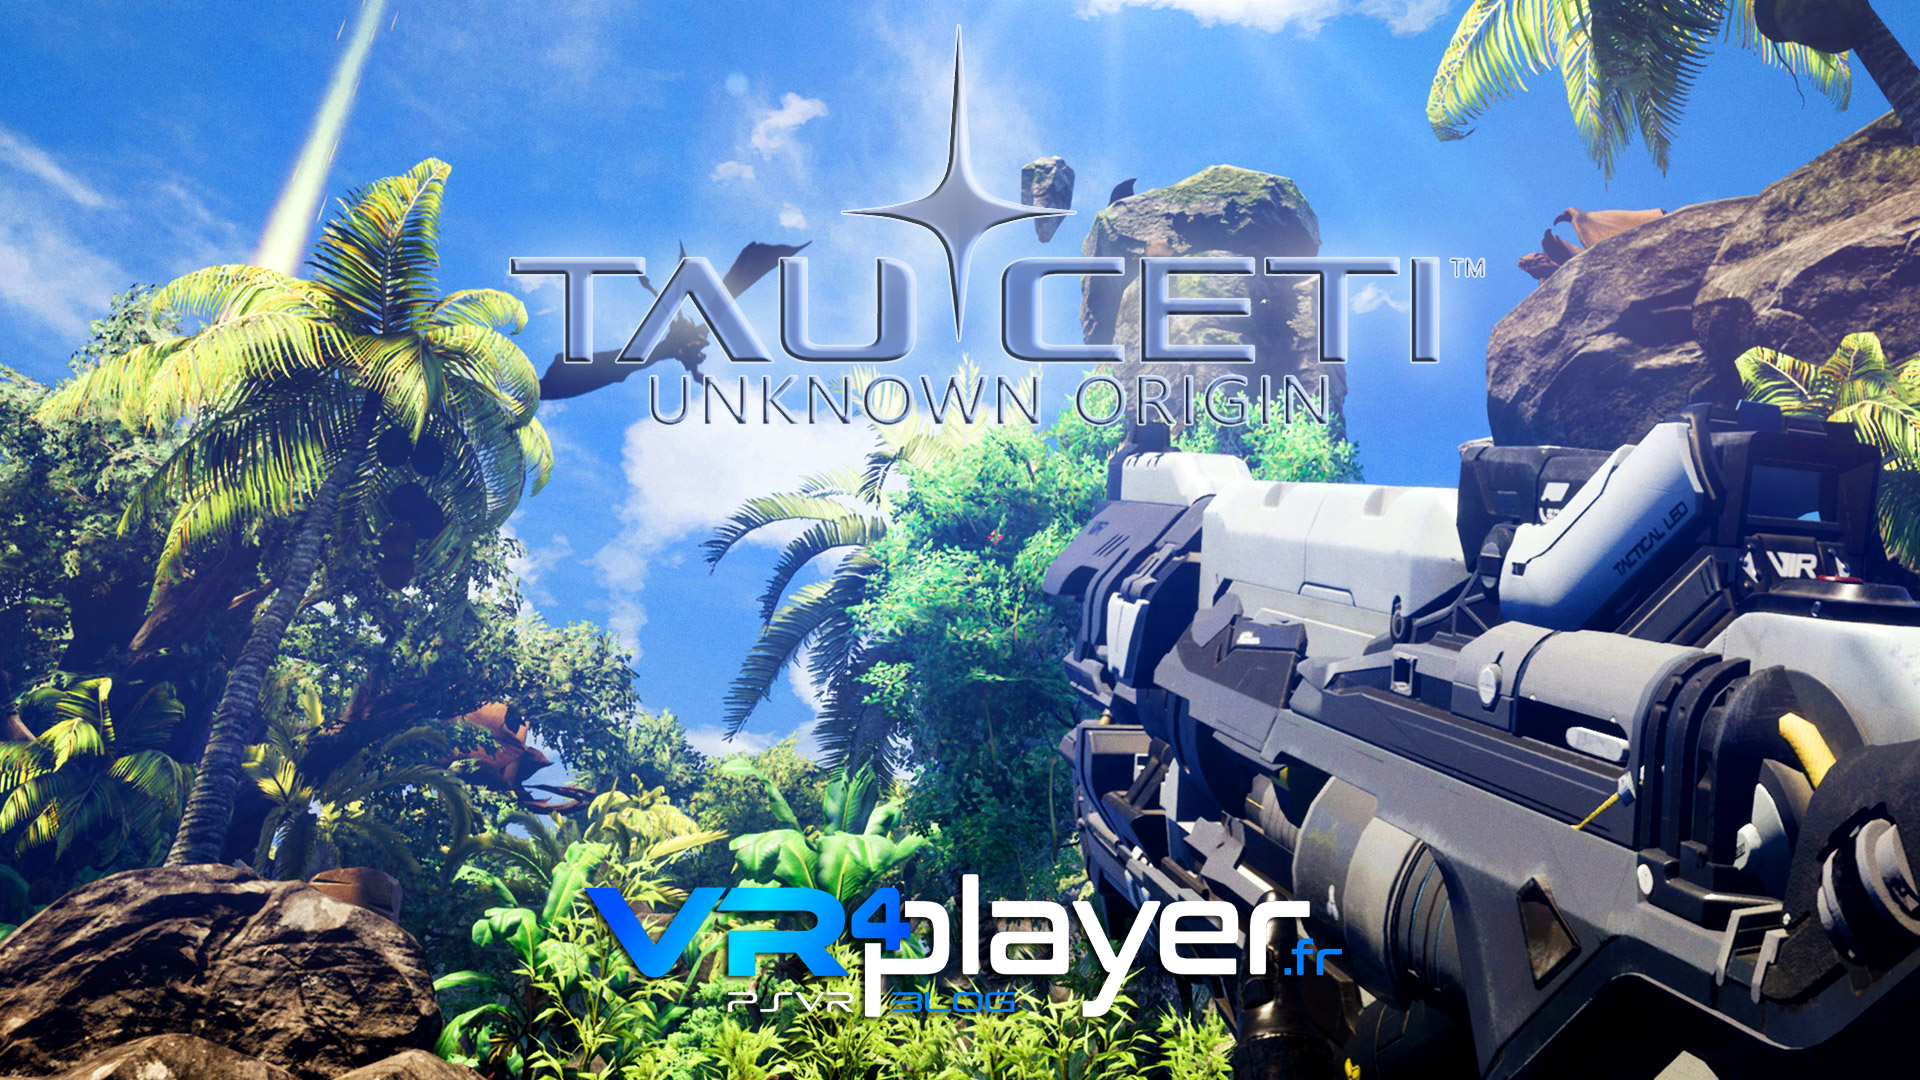 TauCeti Unknown Origin PSVR vr4player